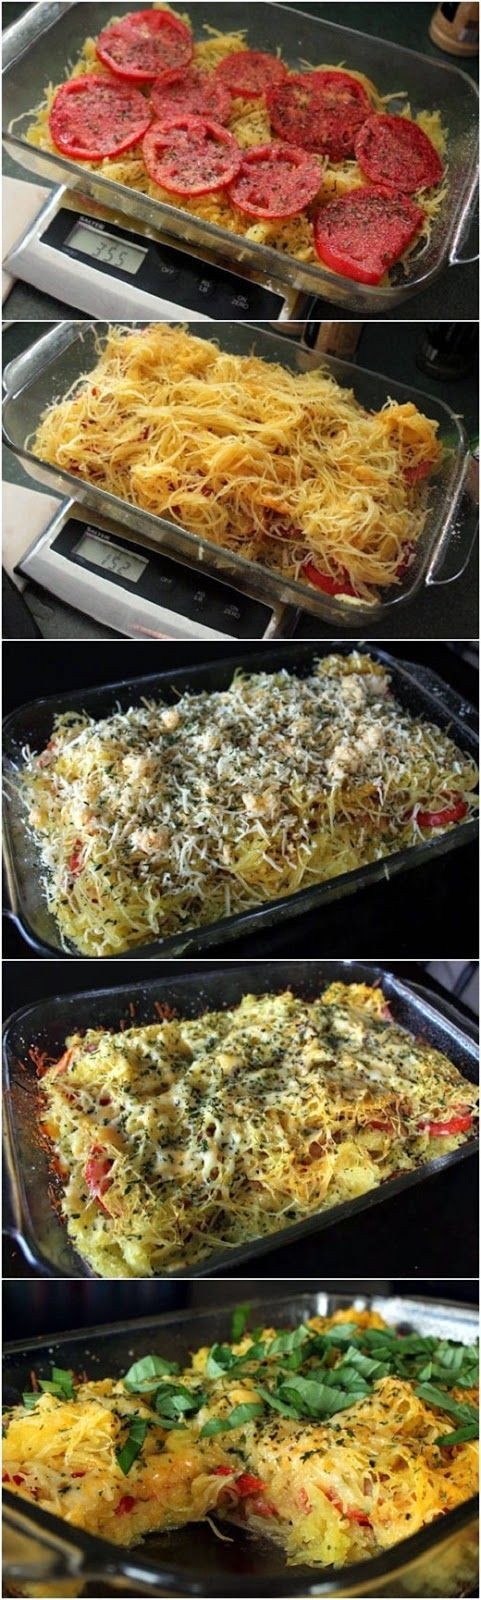 Tomato Basil Spaghetti Squash Bake Phase 3 friendly if you shred your own cheese. :)